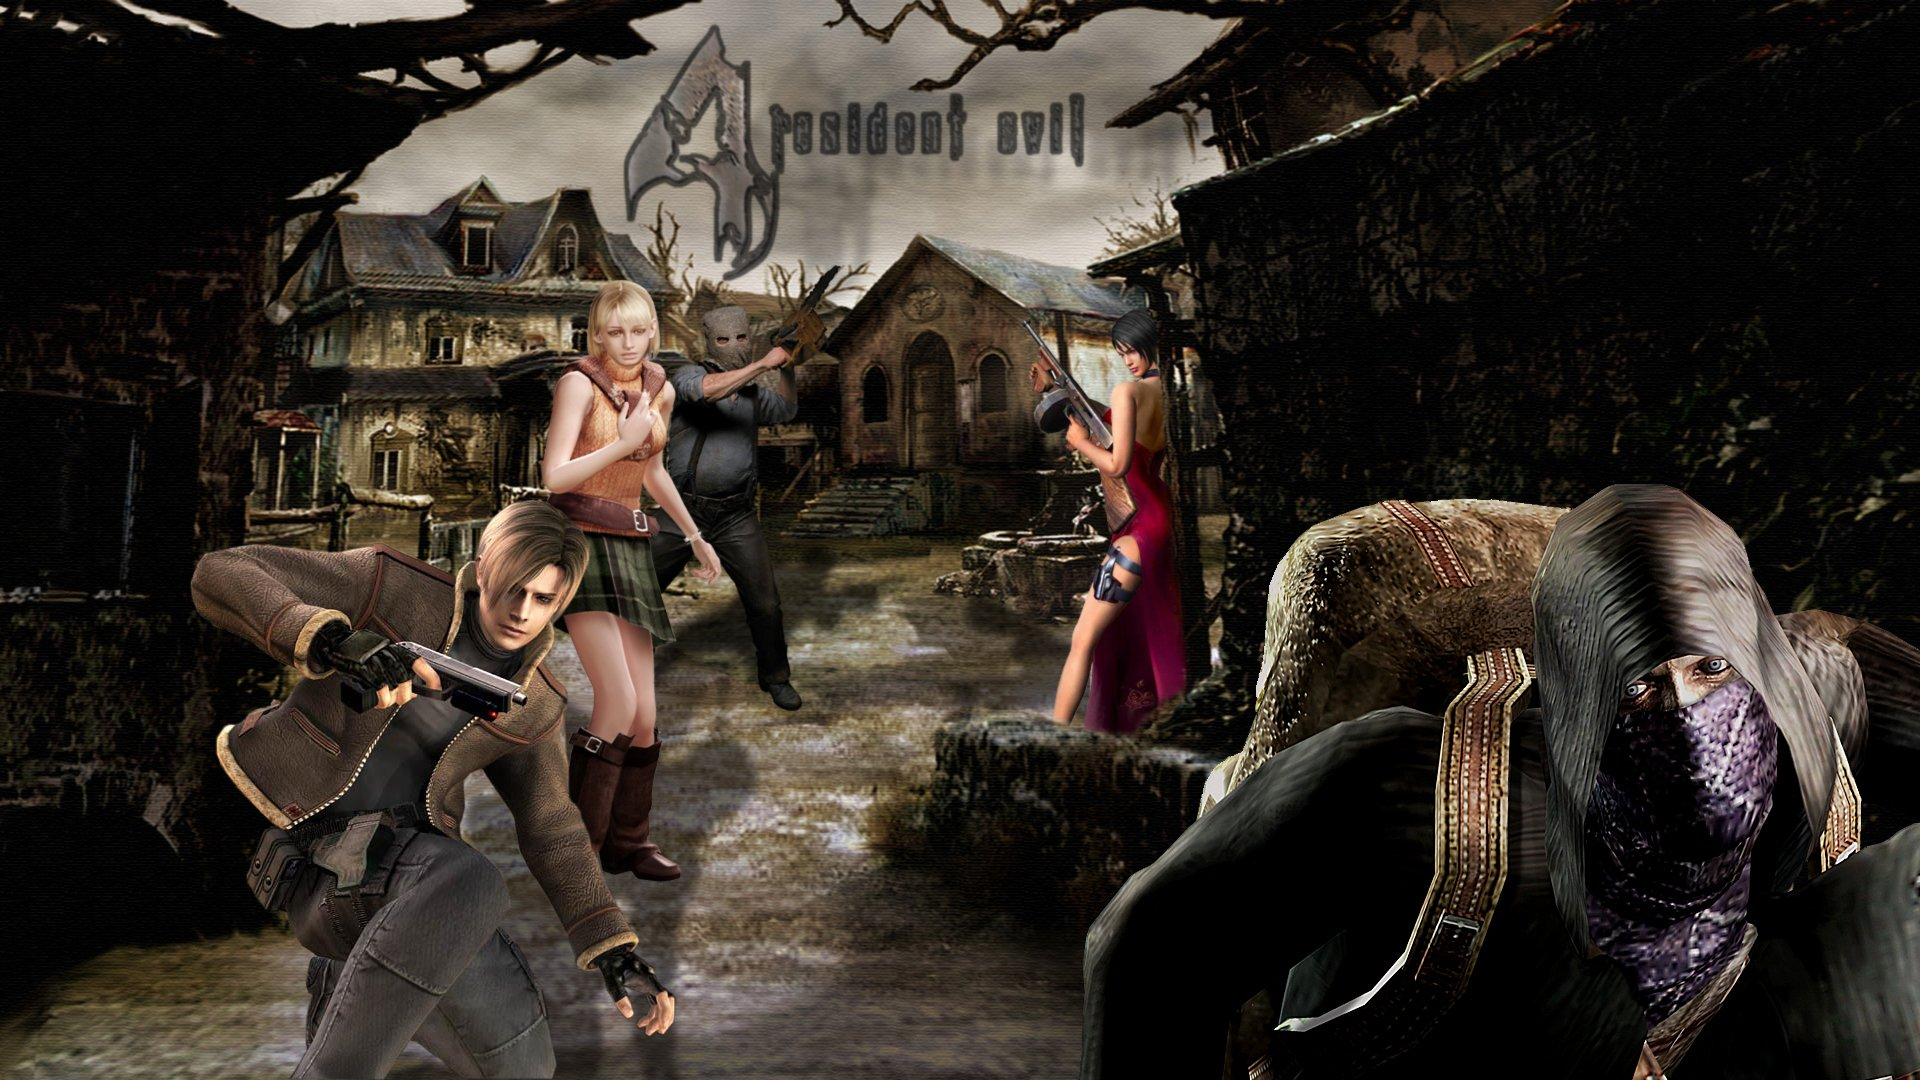 Resident Evil 4 Hd Wallpaper Hd Resident Evil 4 Background